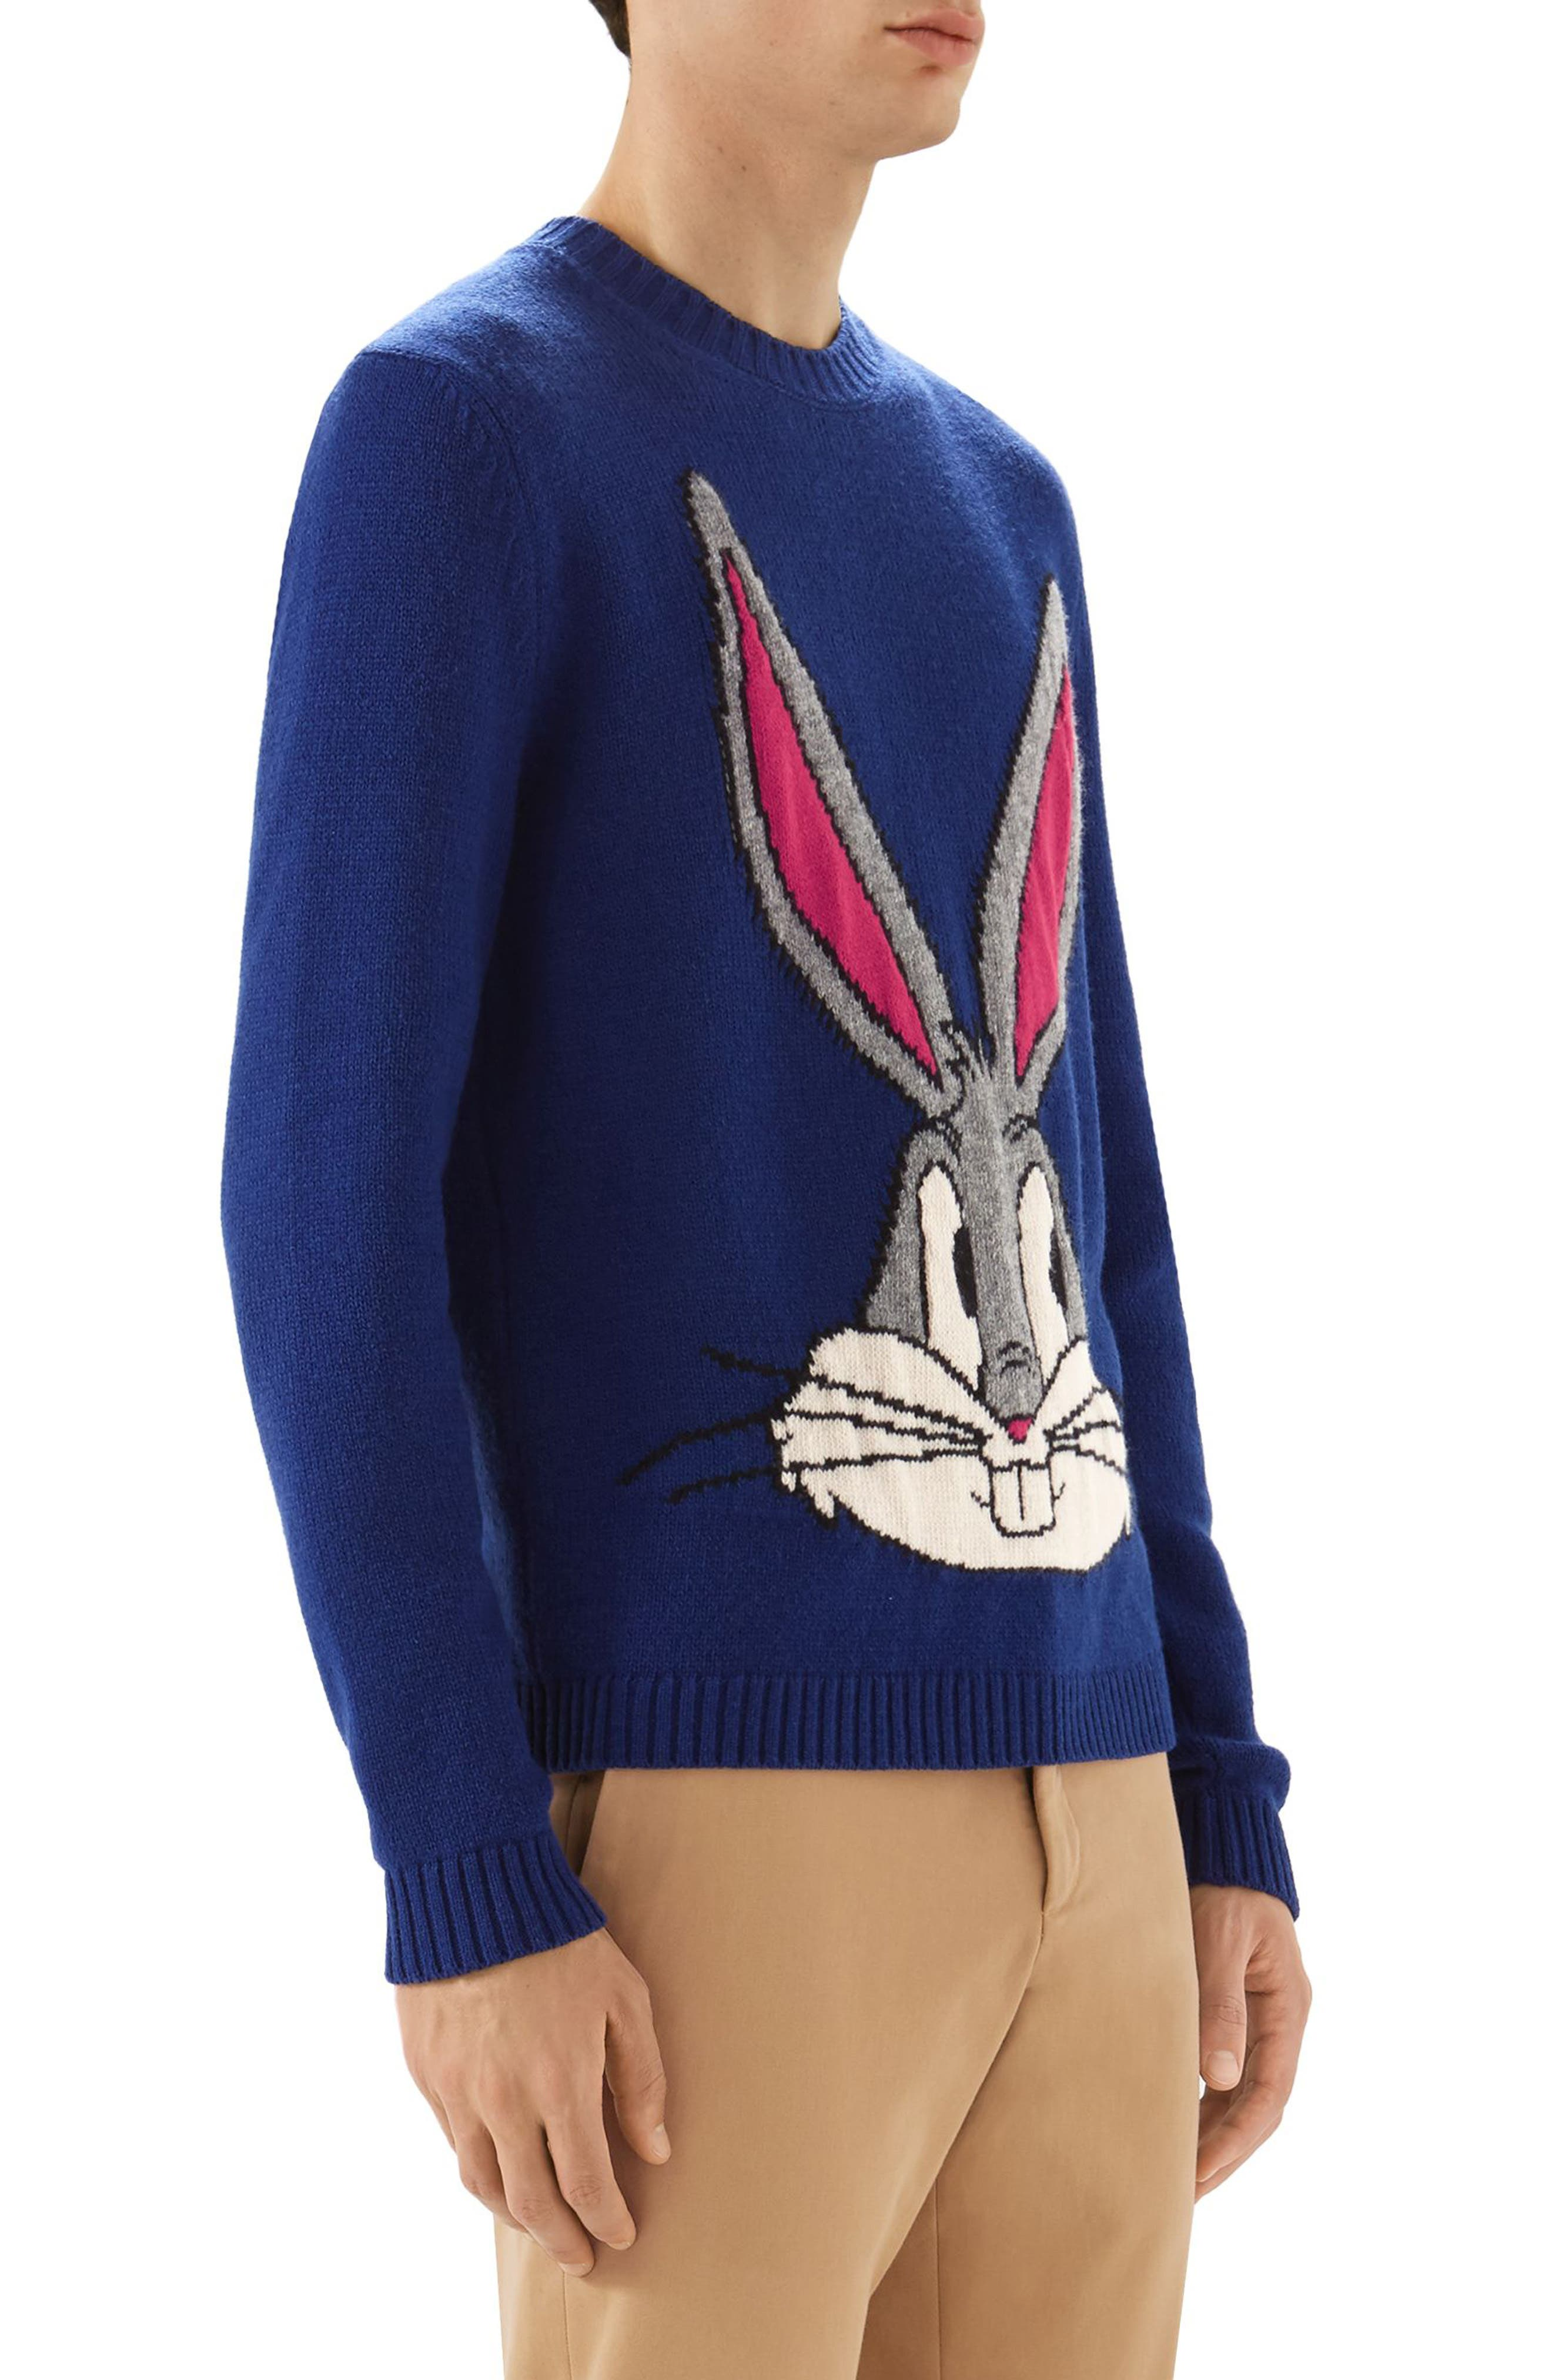 Bugs Bunny Wool Sweater,                             Alternate thumbnail 3, color,                             493